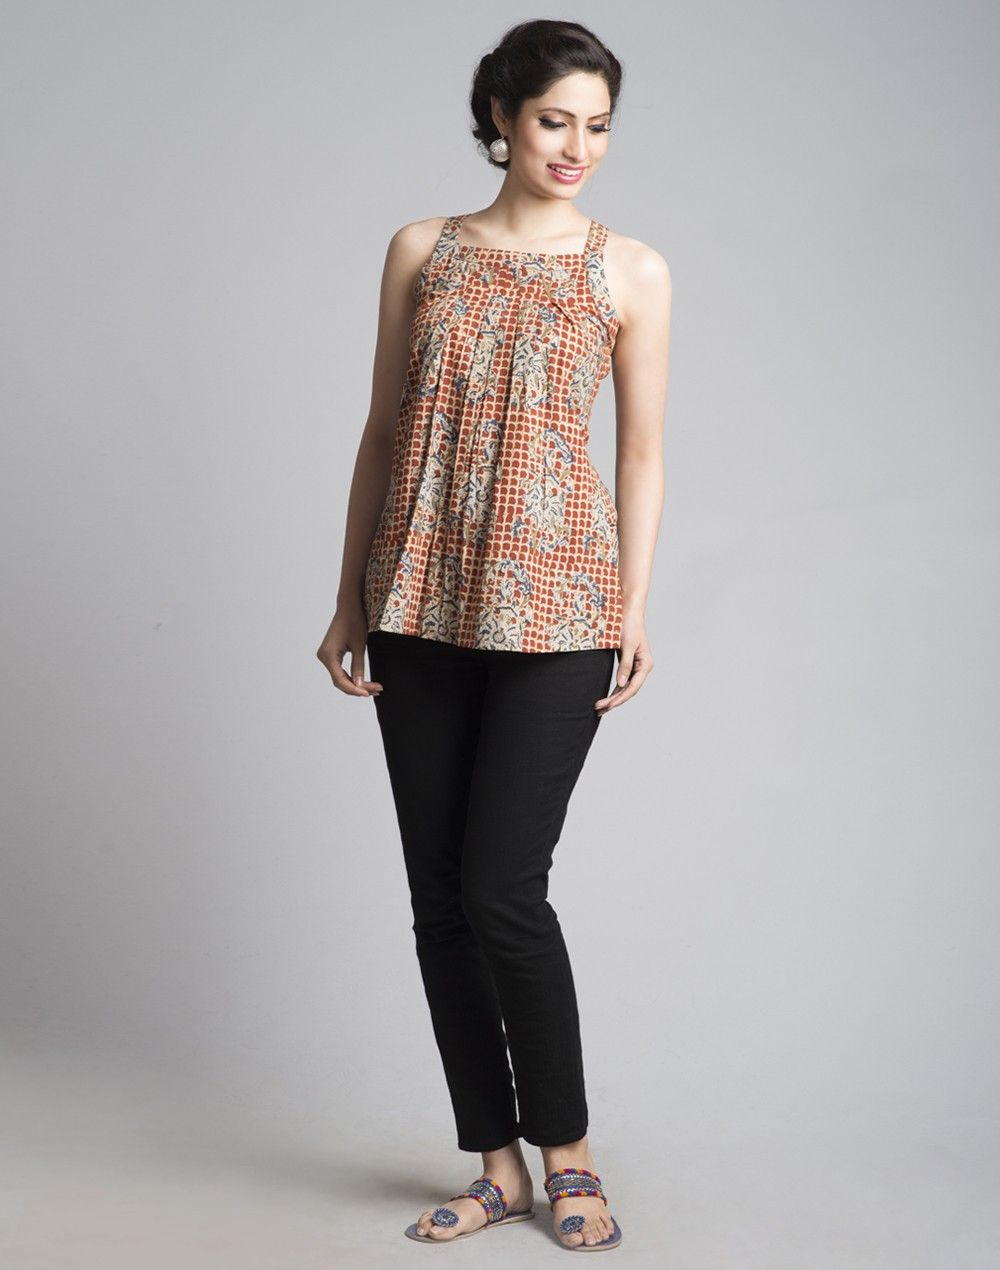 10866f5605 Cotton Kalamkari Pleats Top-Multi: Buy Fabindia Cotton Kalamkari Pleats Top-Multi  Online in India. – Fabindia.com